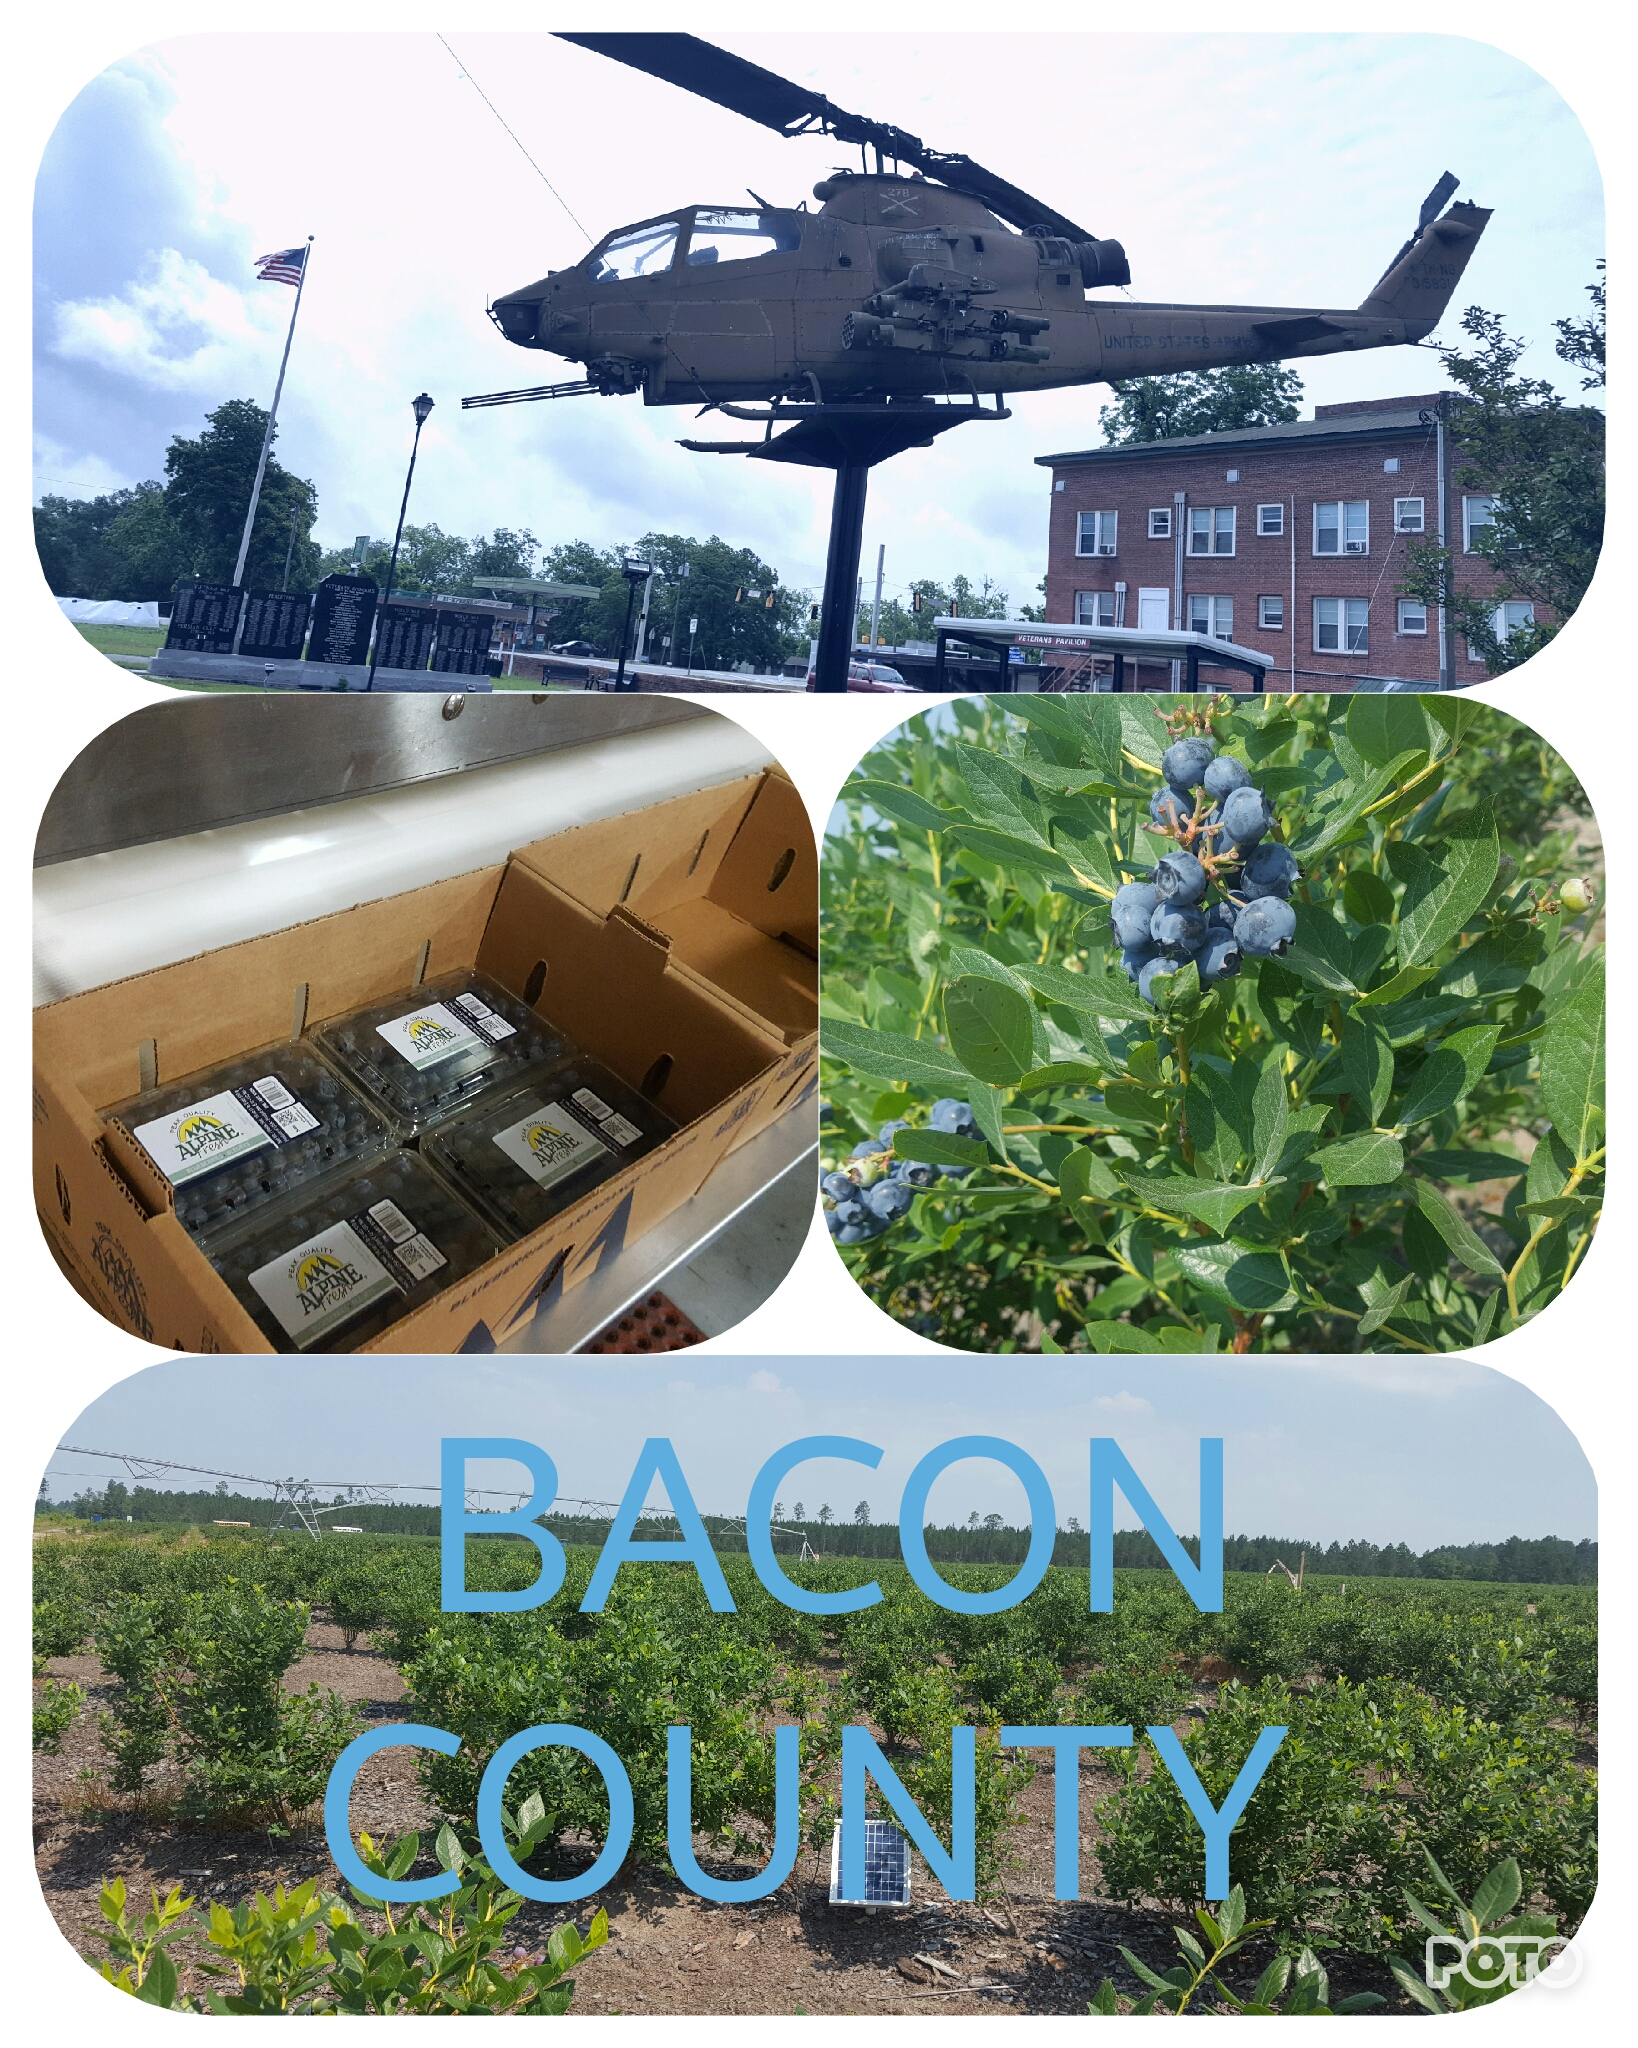 Copy of Bacon County Collage.jpg